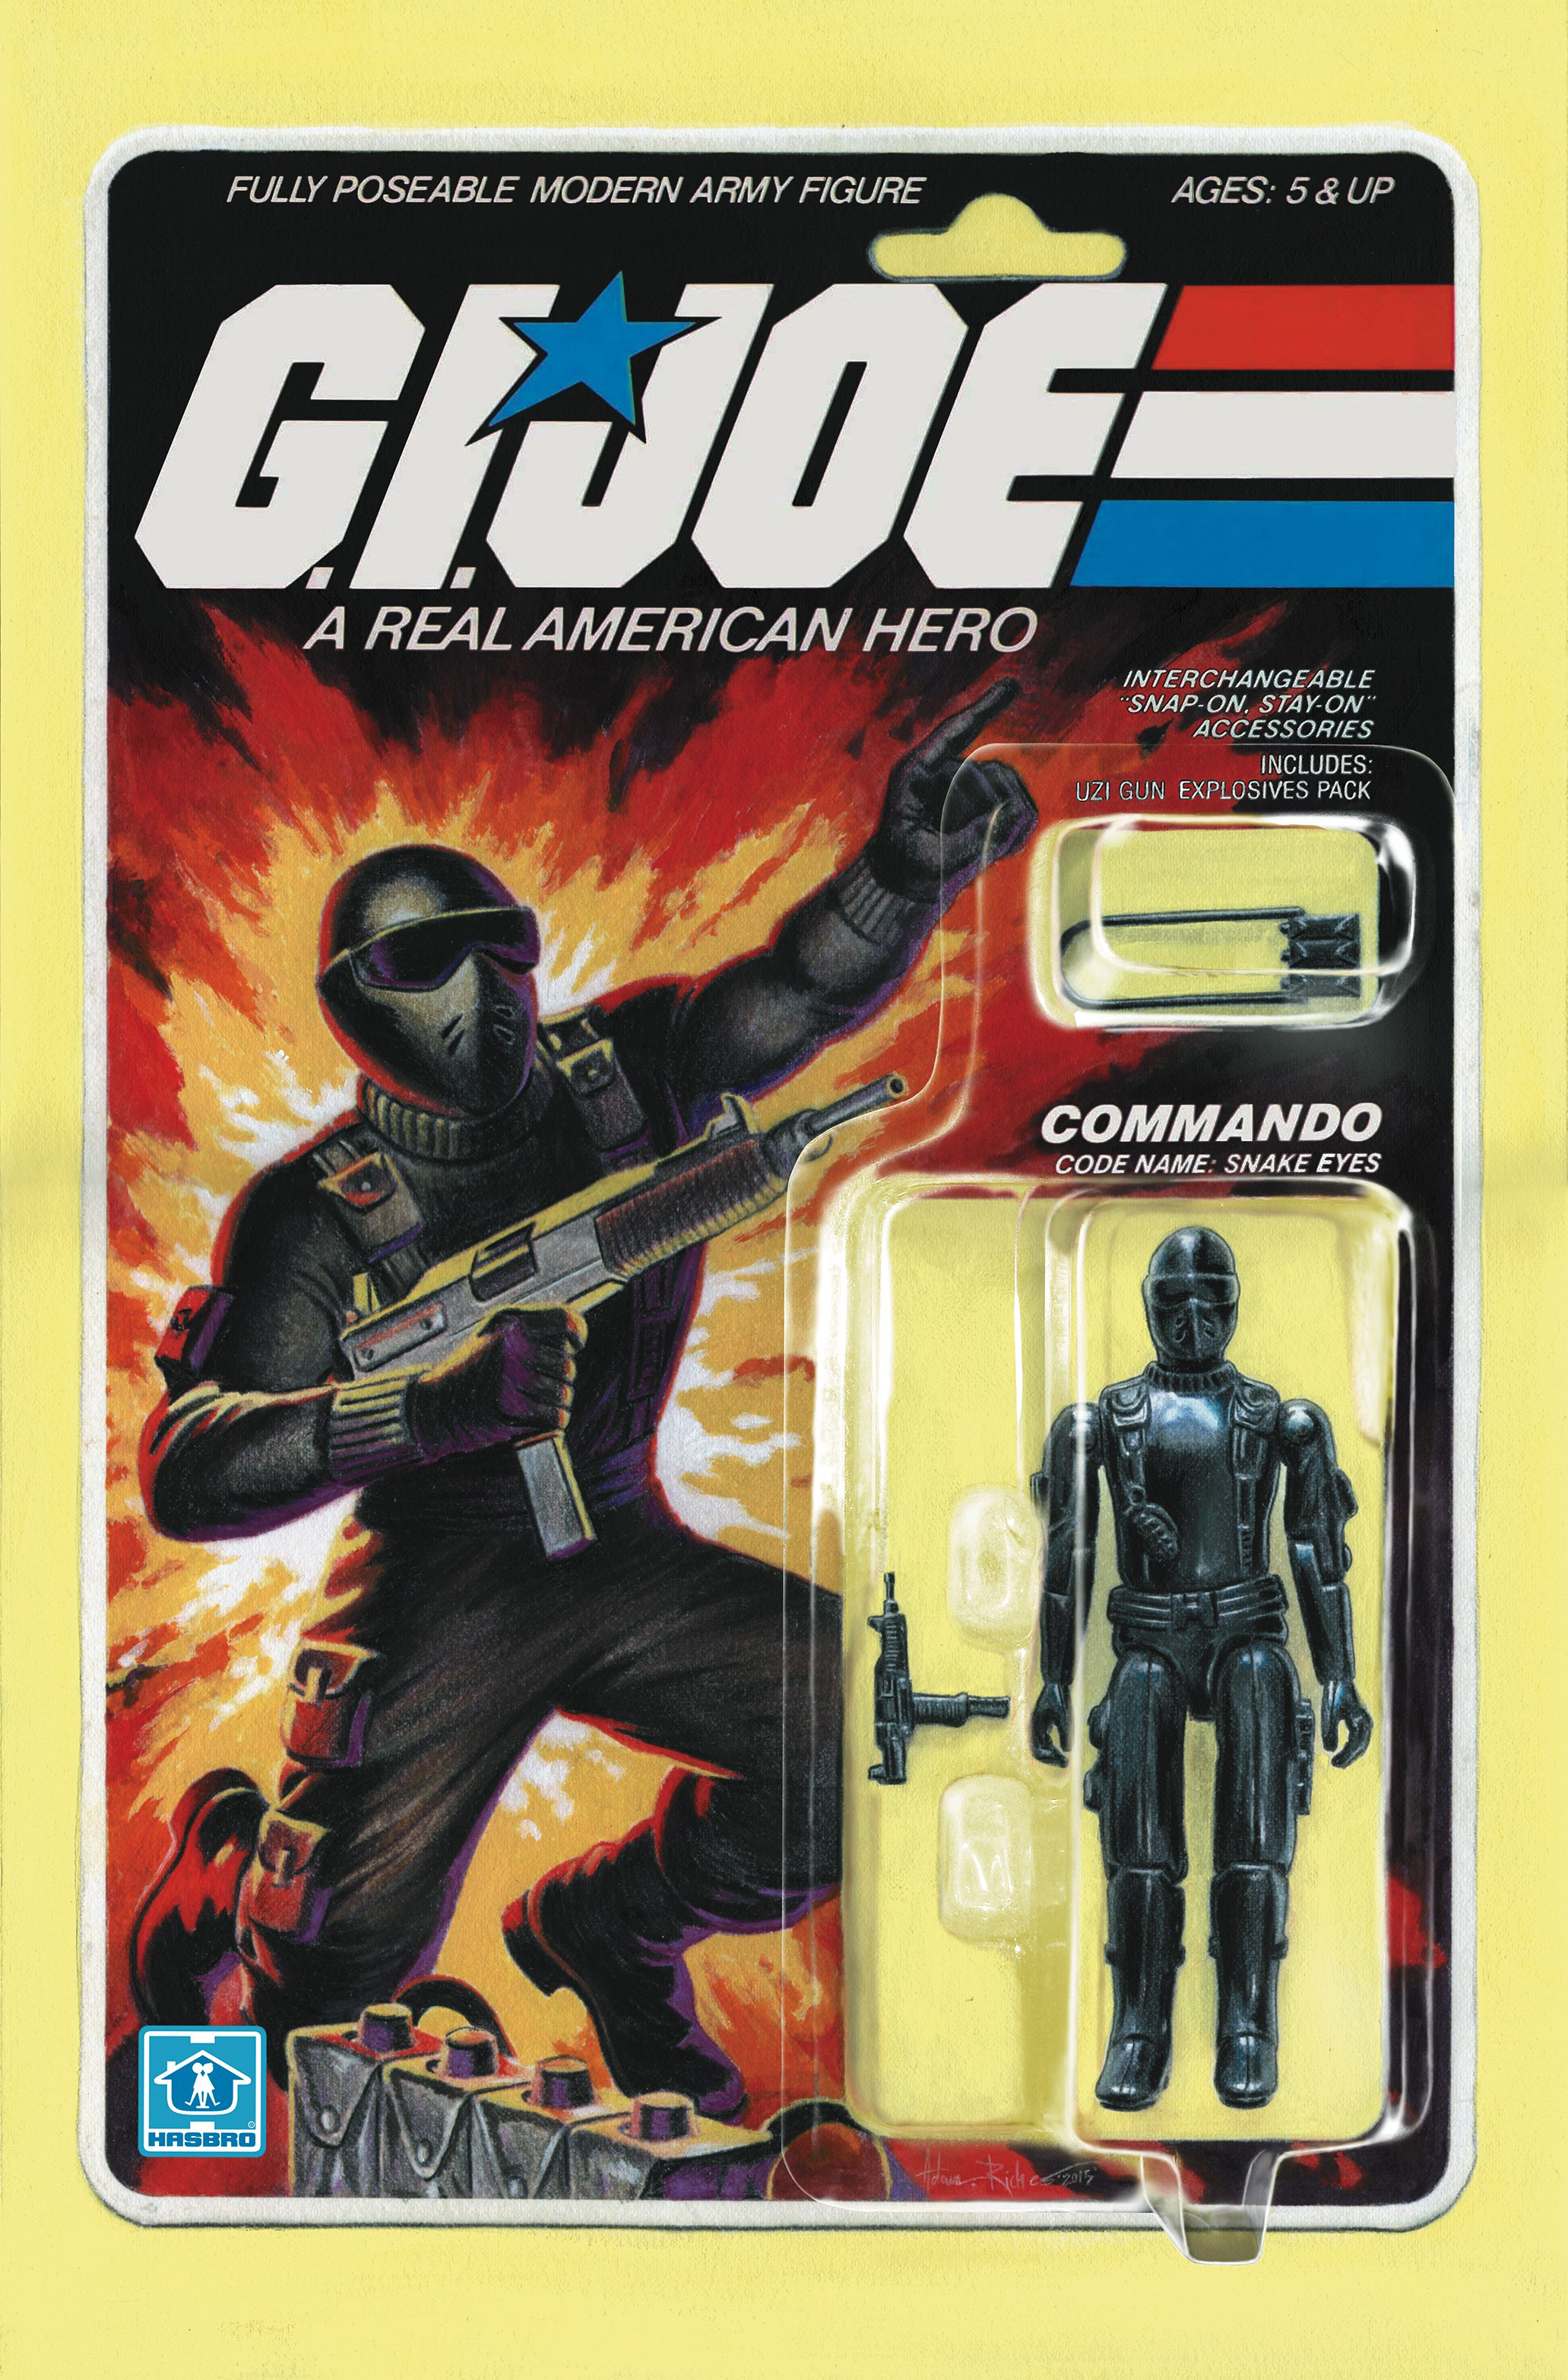 GI JOE A REAL AMERICAN HERO #219 SUBSCRIPTION VAR